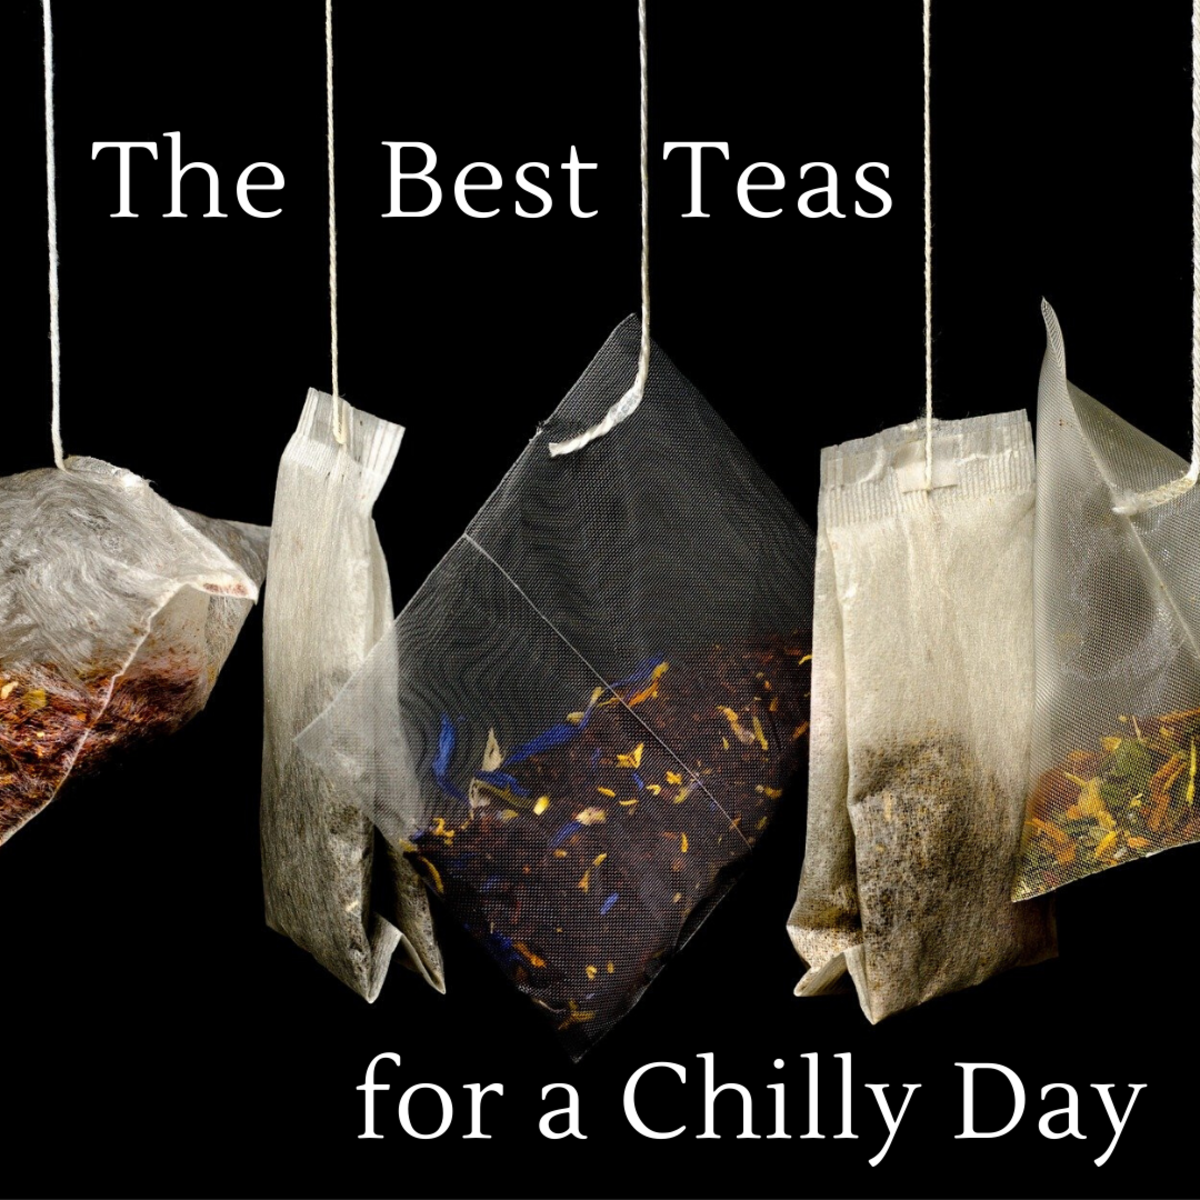 This article will break down my five favorite teas to drink when it's cold outside and I'm in need of warmth.